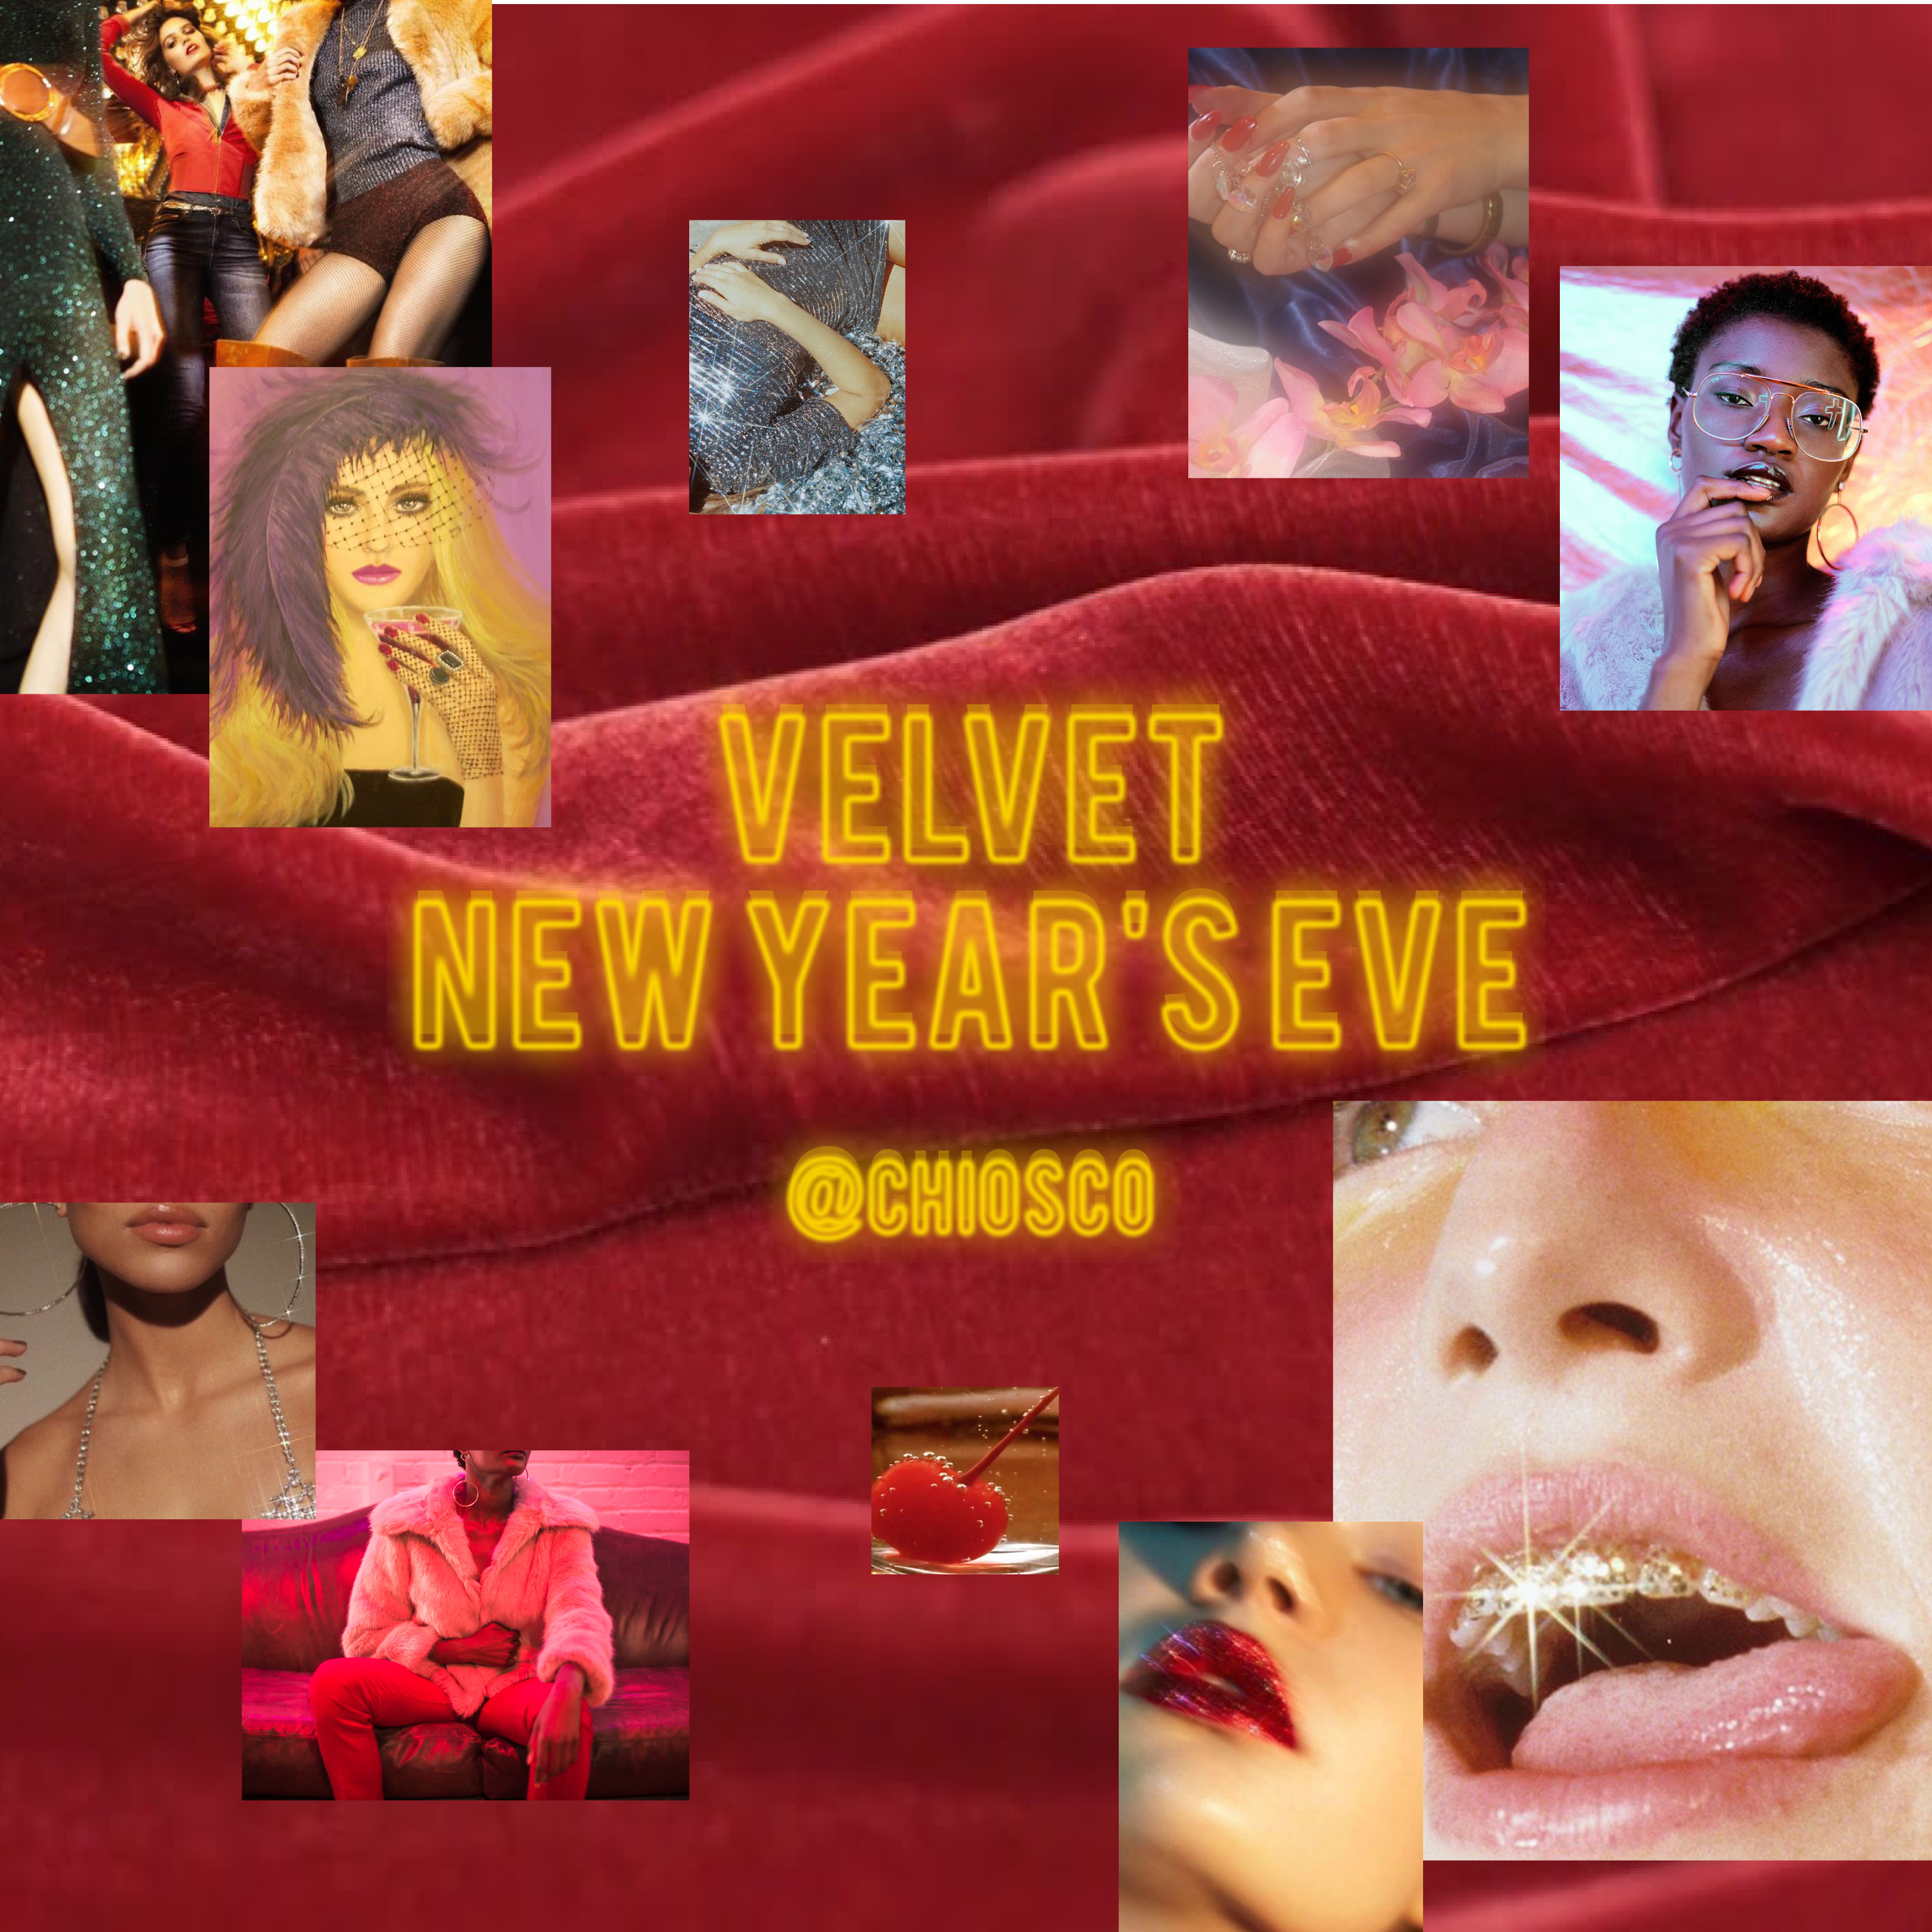 Velvet ✦ New Year's Eve